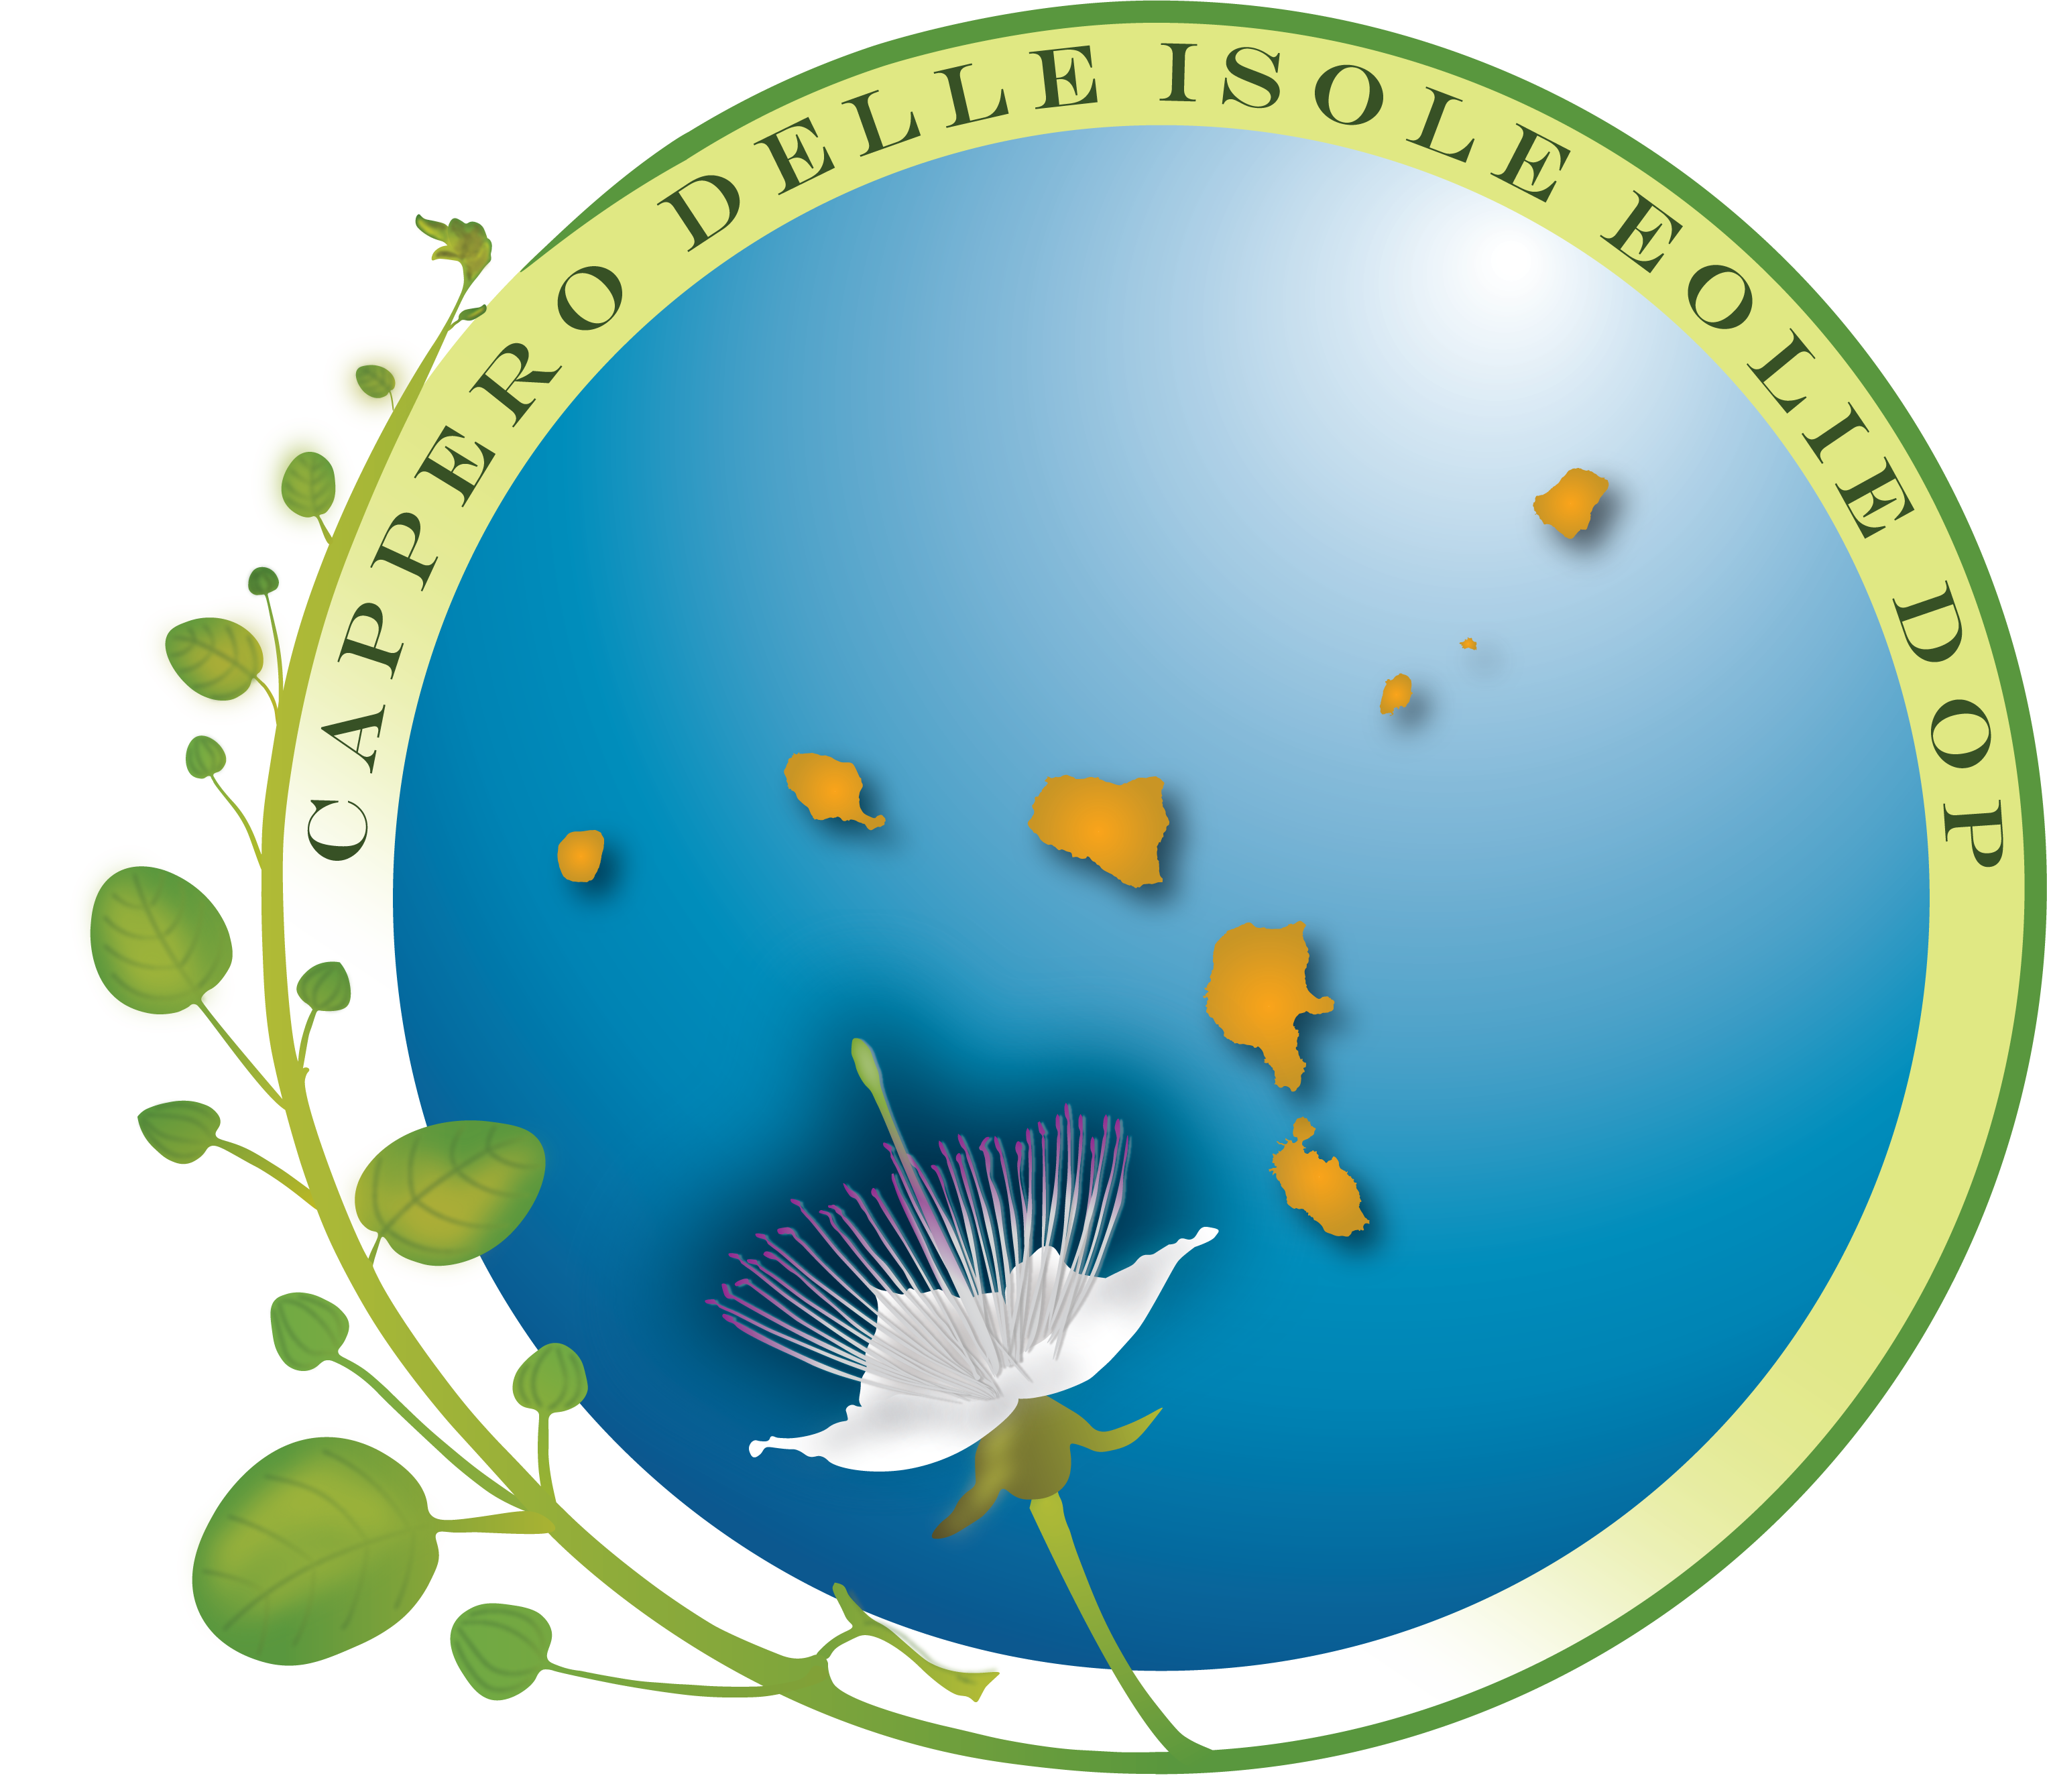 Cappero delle Isole Eolie DOP